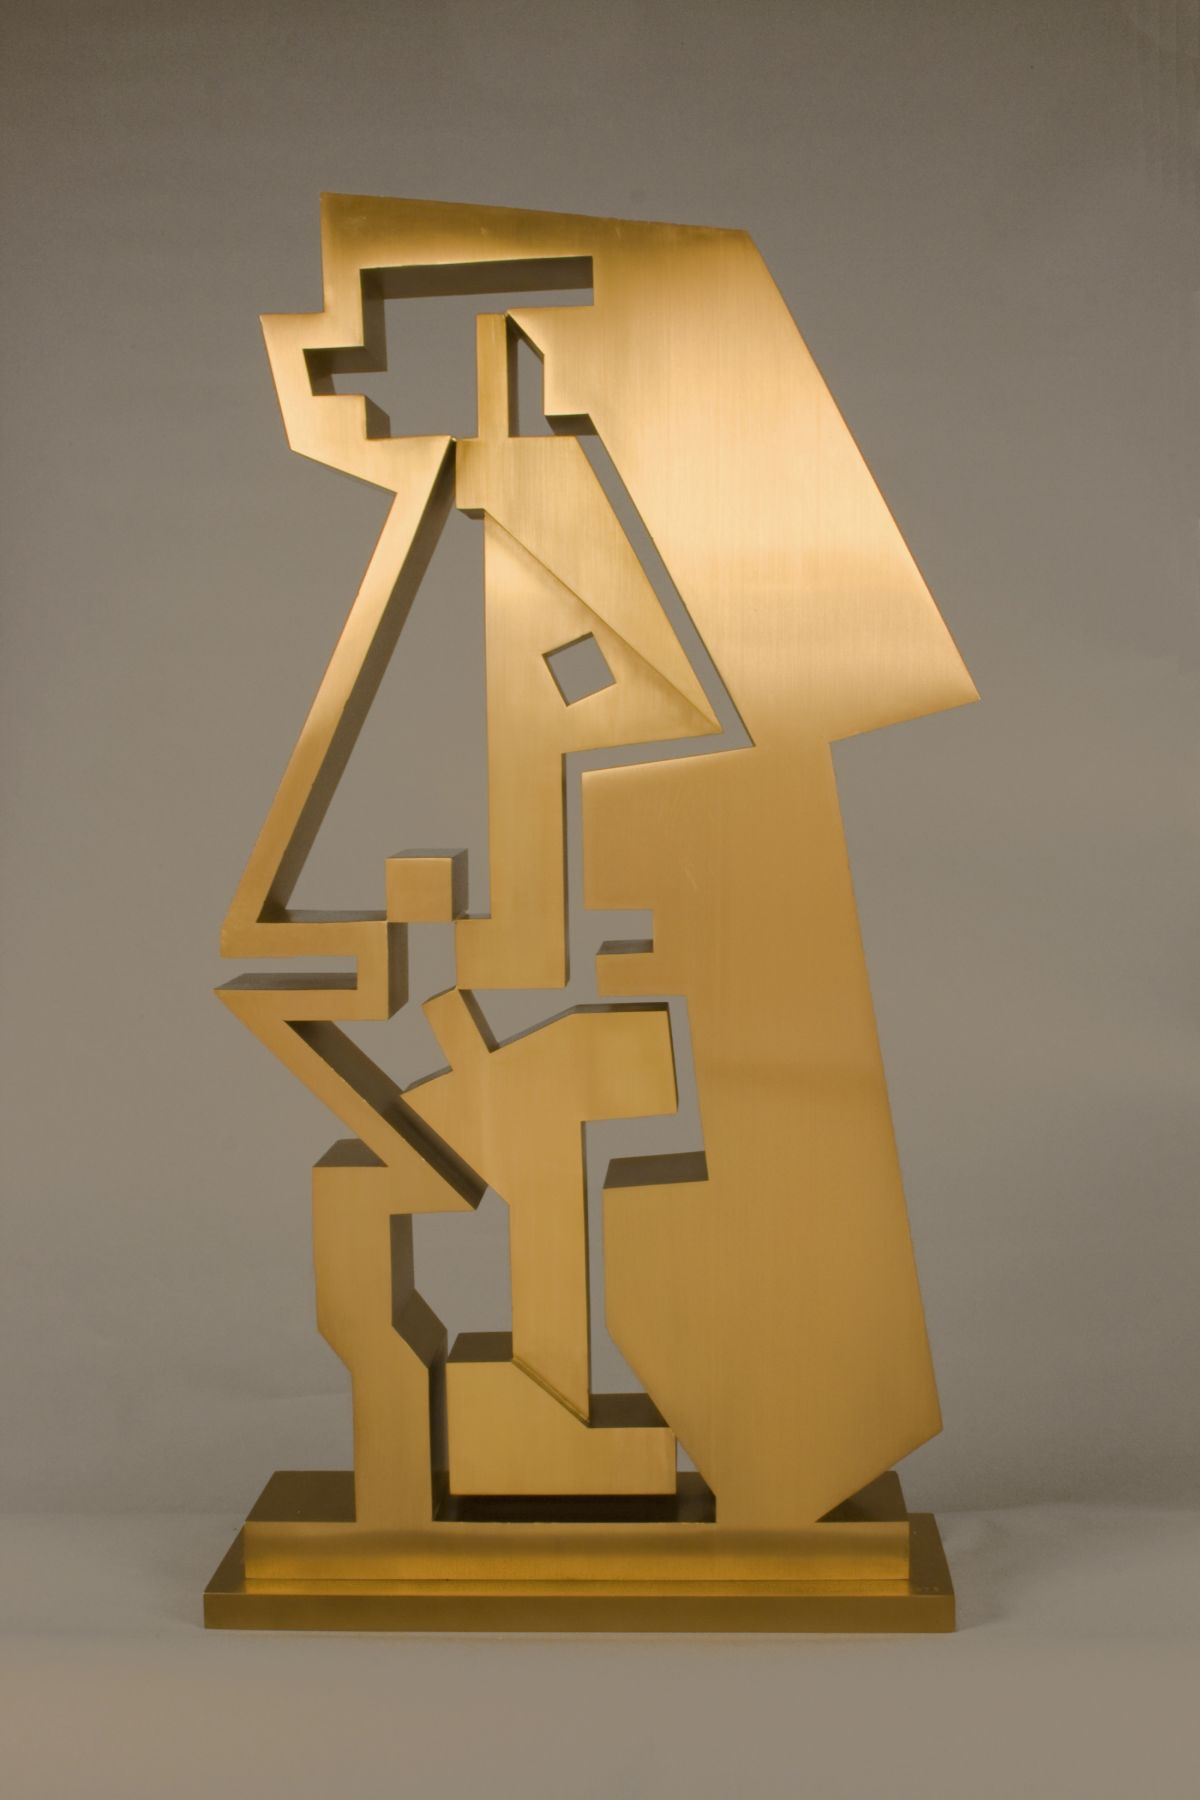 Ernest Tino Trova, Gox #3 (SOLD), 1976, bronze with gold patina, 37 x 26 x 6 inches